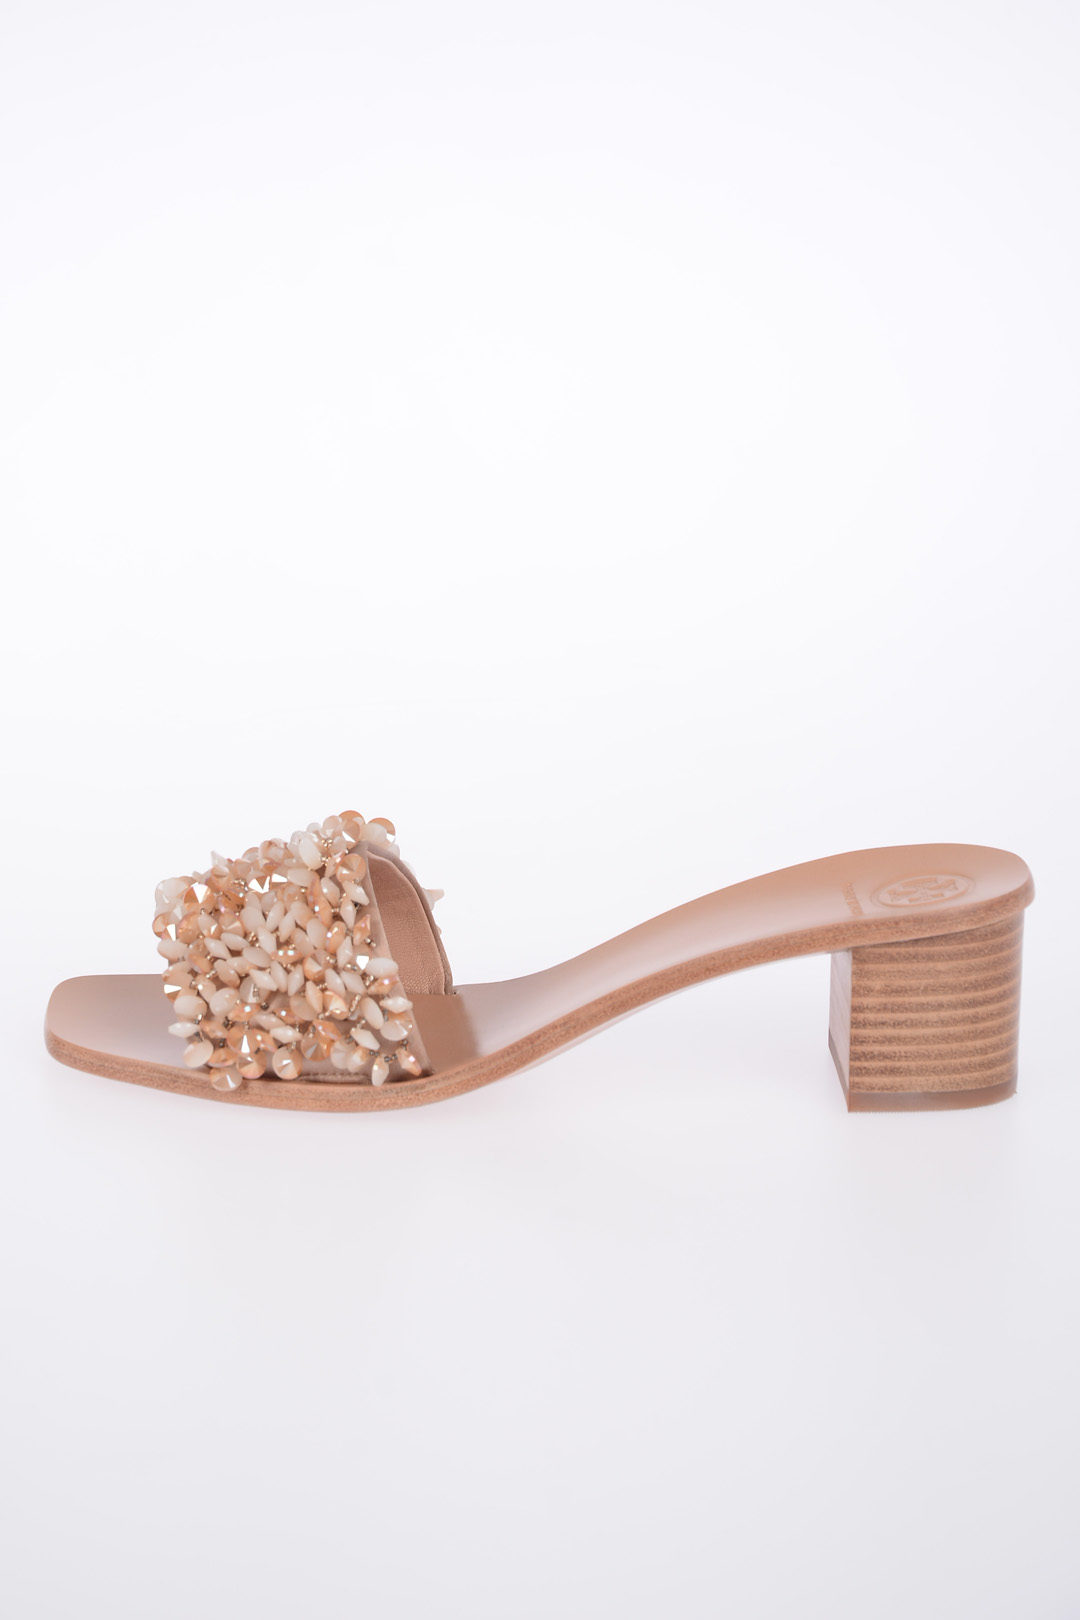 a2e855aa2 Tory Burch Leather LOGAN Mules with Jewel Applications women ...